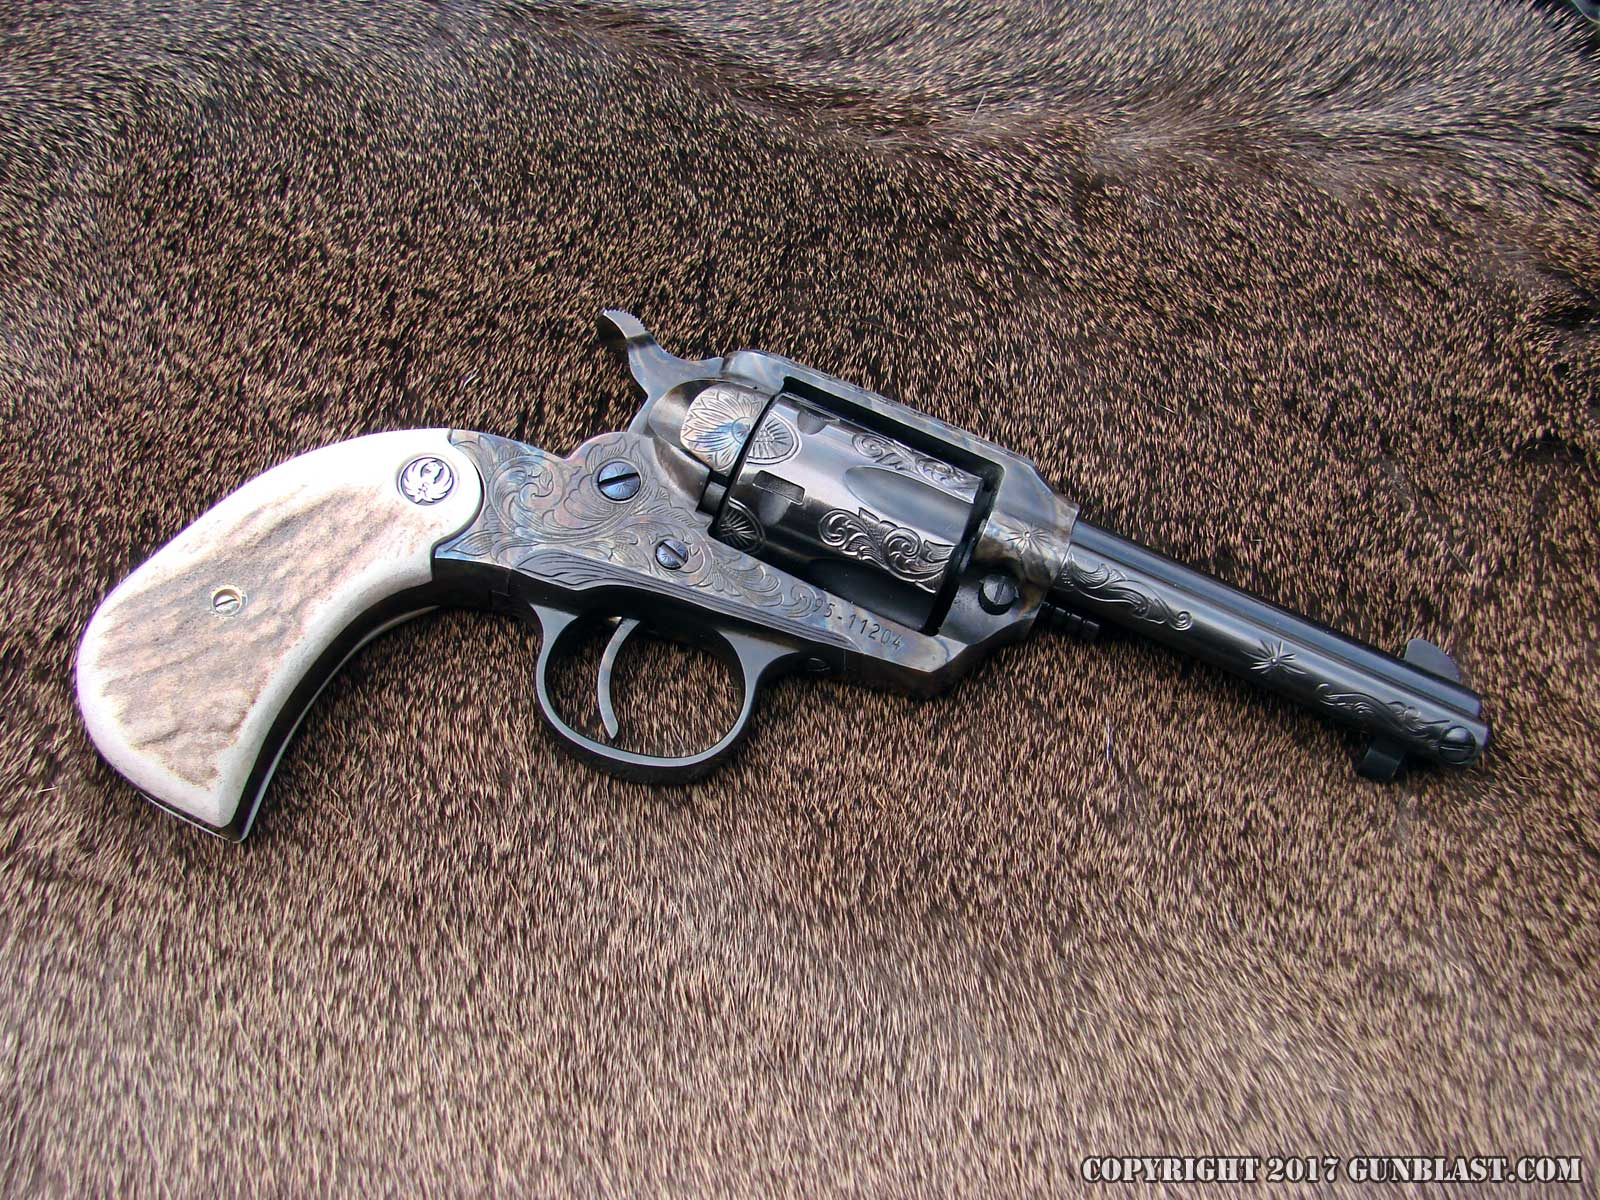 Limited Edition Ruger Bearcat Shopkeeper Sixguns from Tyler Gun Works